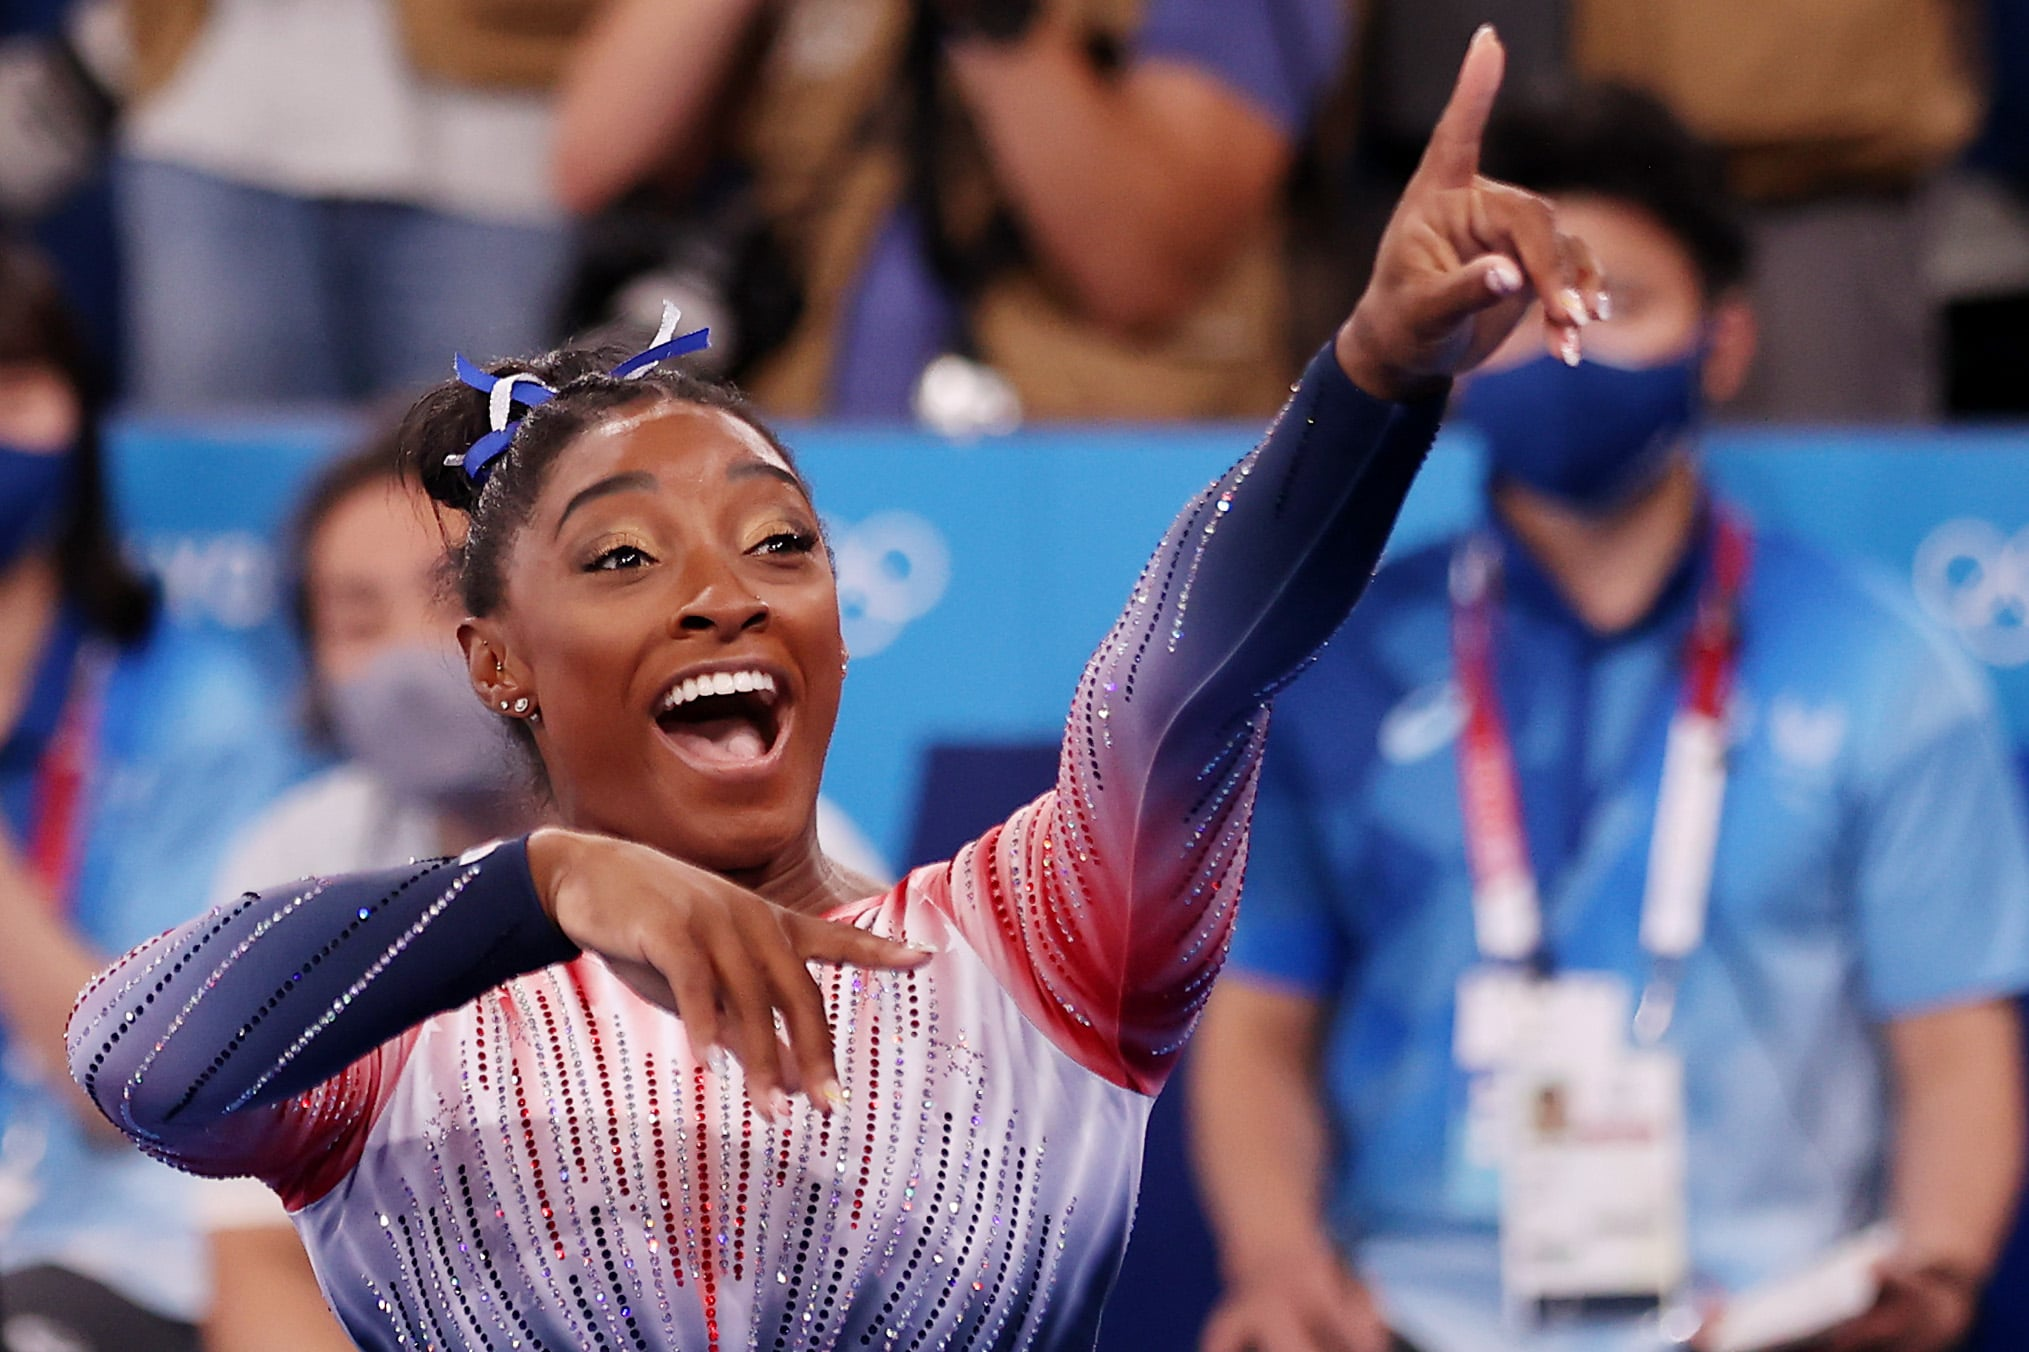 TOKYO, JAPAN - AUGUST 03: Simone Biles of Team United States reacts during the Women's Balance Beam Final on day eleven of the Tokyo 2020 Olympic Games at Ariake Gymnastics Centre on August 03, 2021 in Tokyo, Japan. (Photo by Laurence Griffiths/Getty Images)